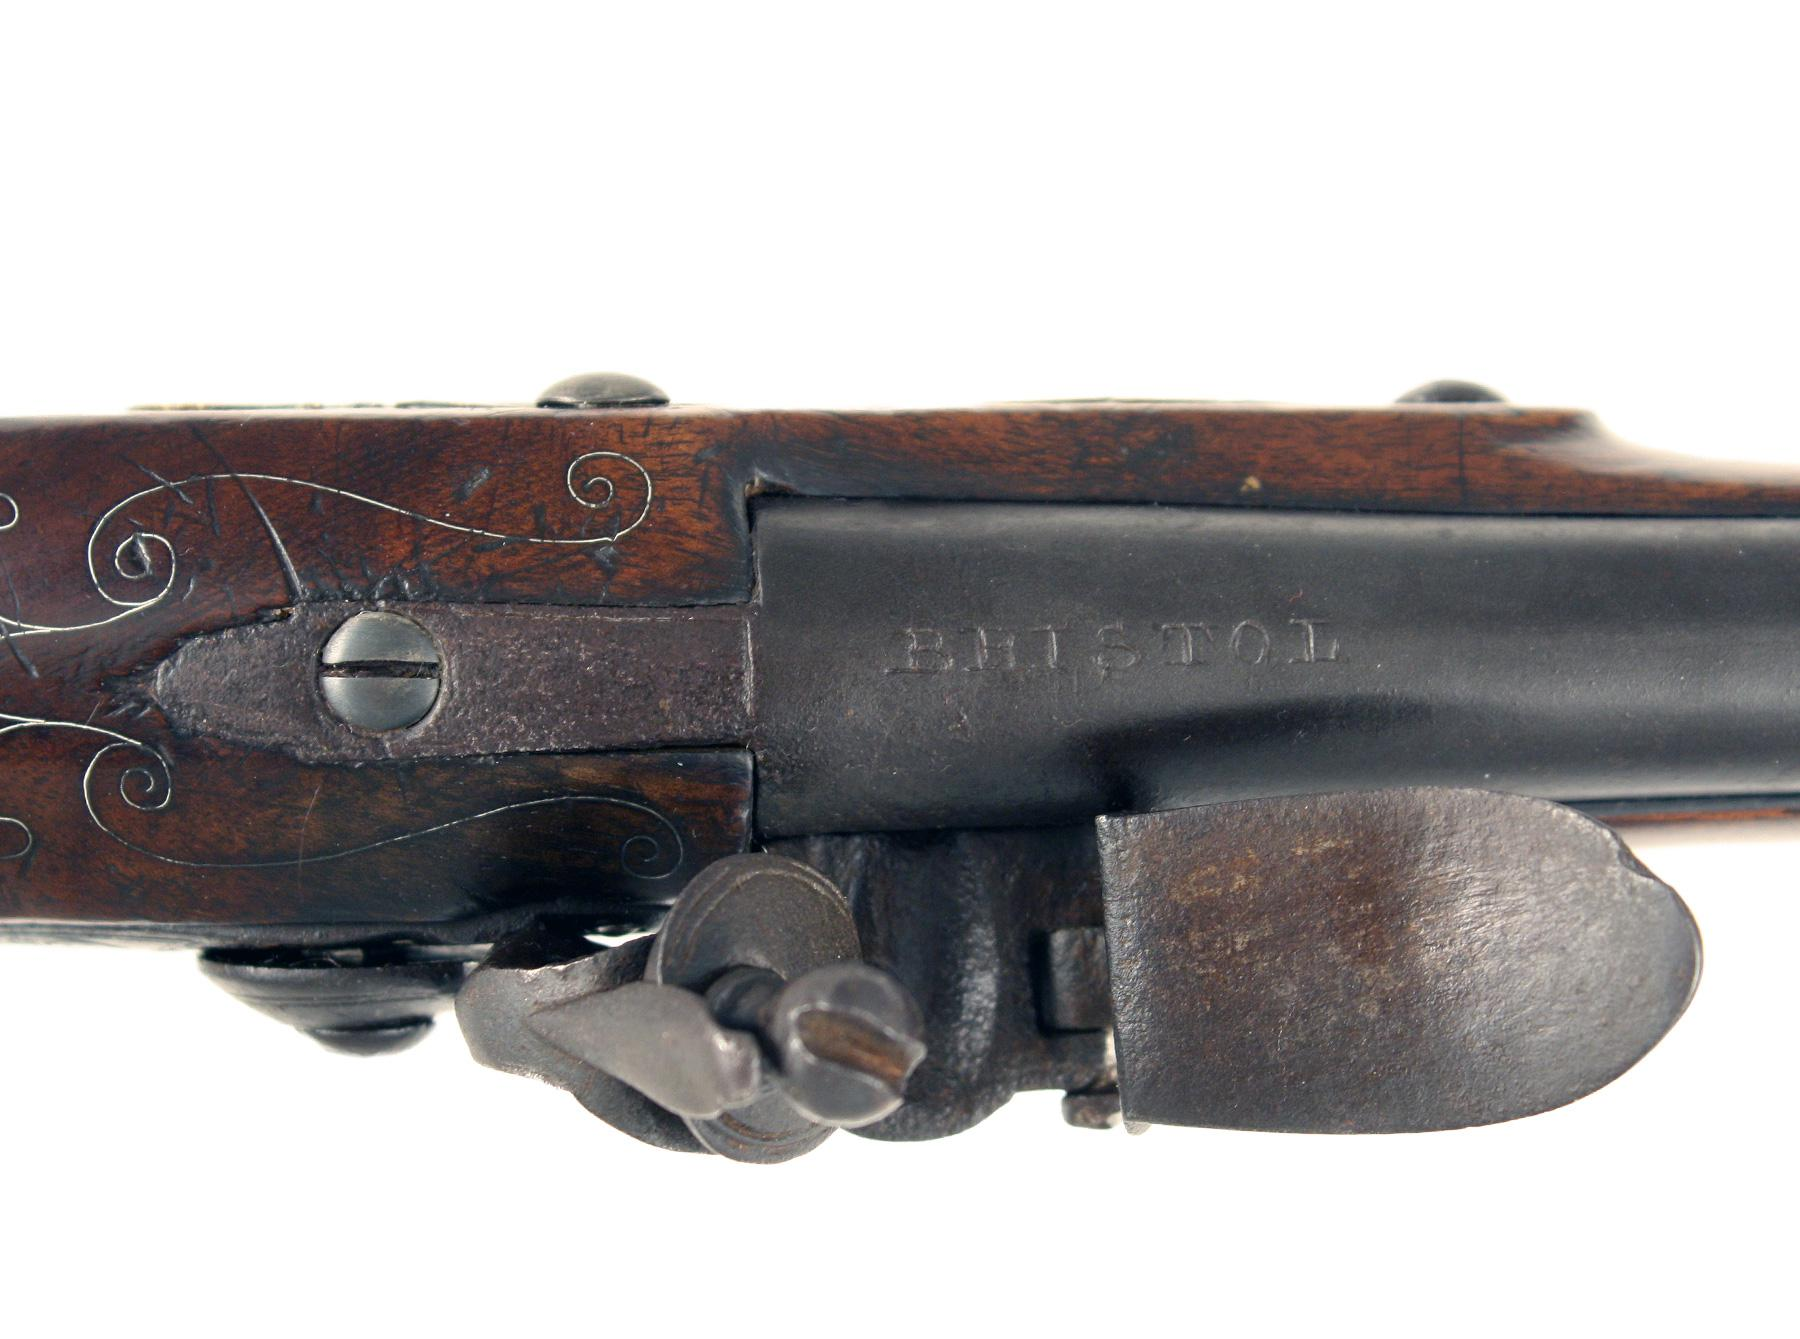 An Early Flintlock Blunderbuss Pistol